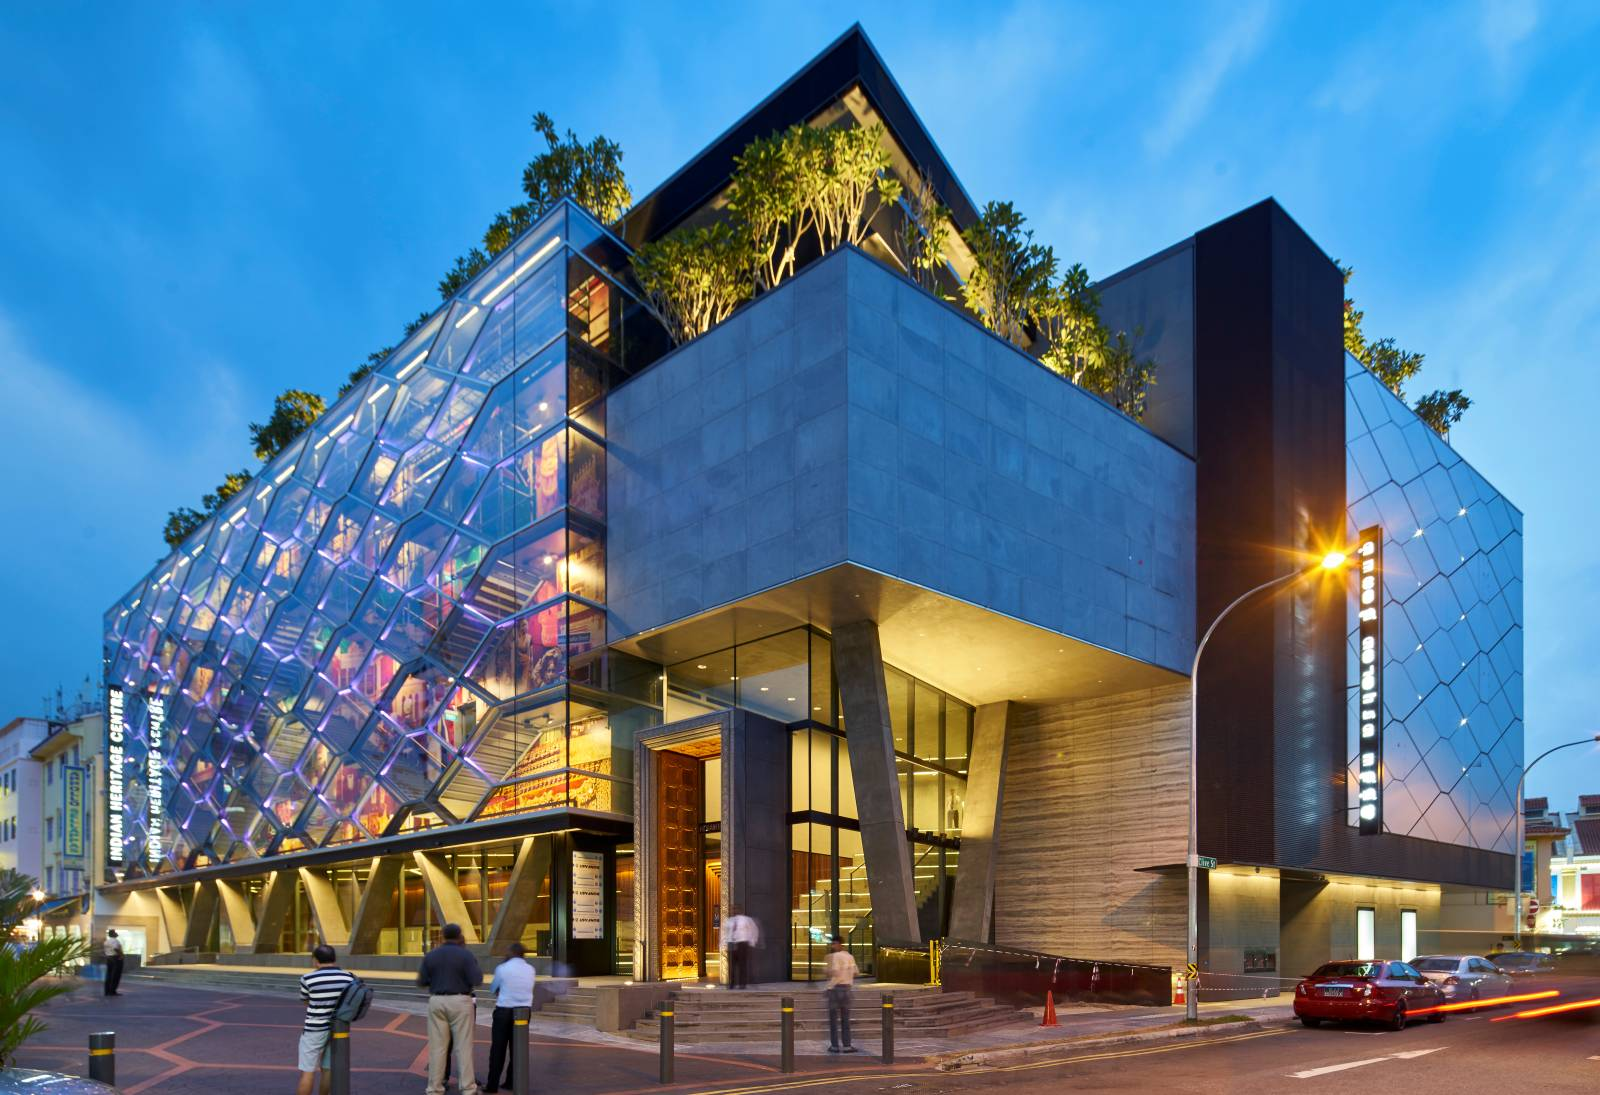 Indian Heritage Centre Singapore Map Tourist Attractions in – Tourist Map Of Singapore City